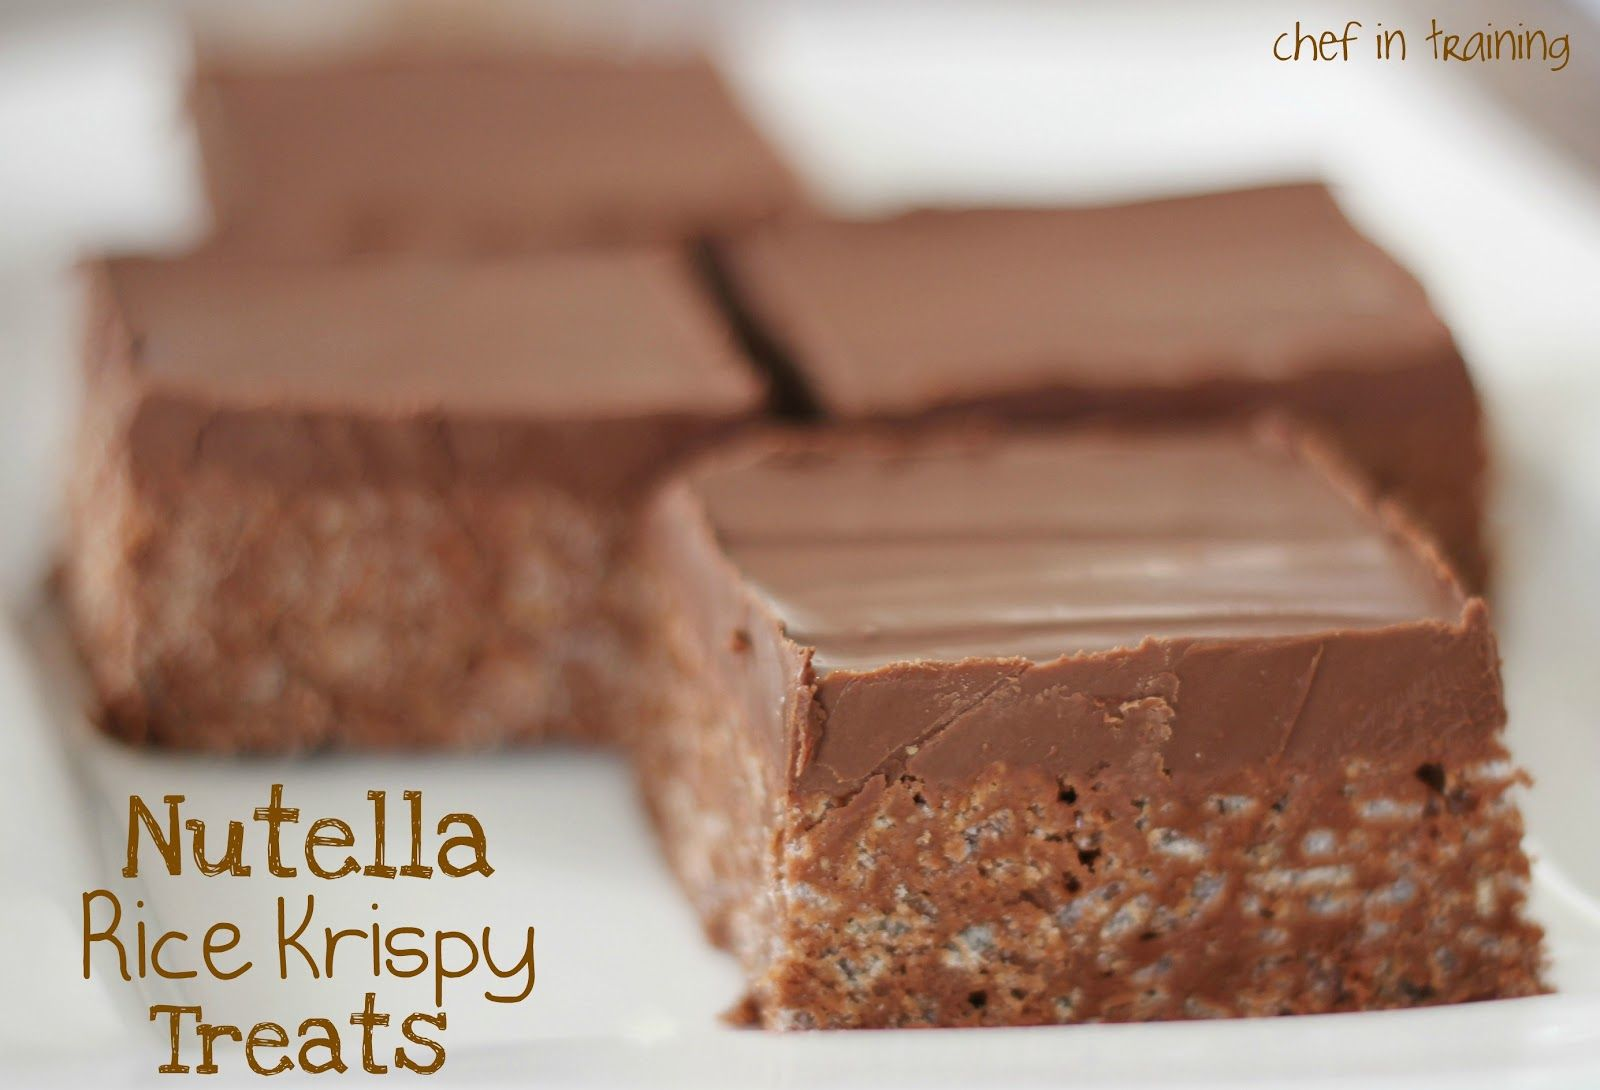 Nutella Rice Krispy Treats!... Words cannot describe how AMAZING these are! Note to self: use GF rice krispies